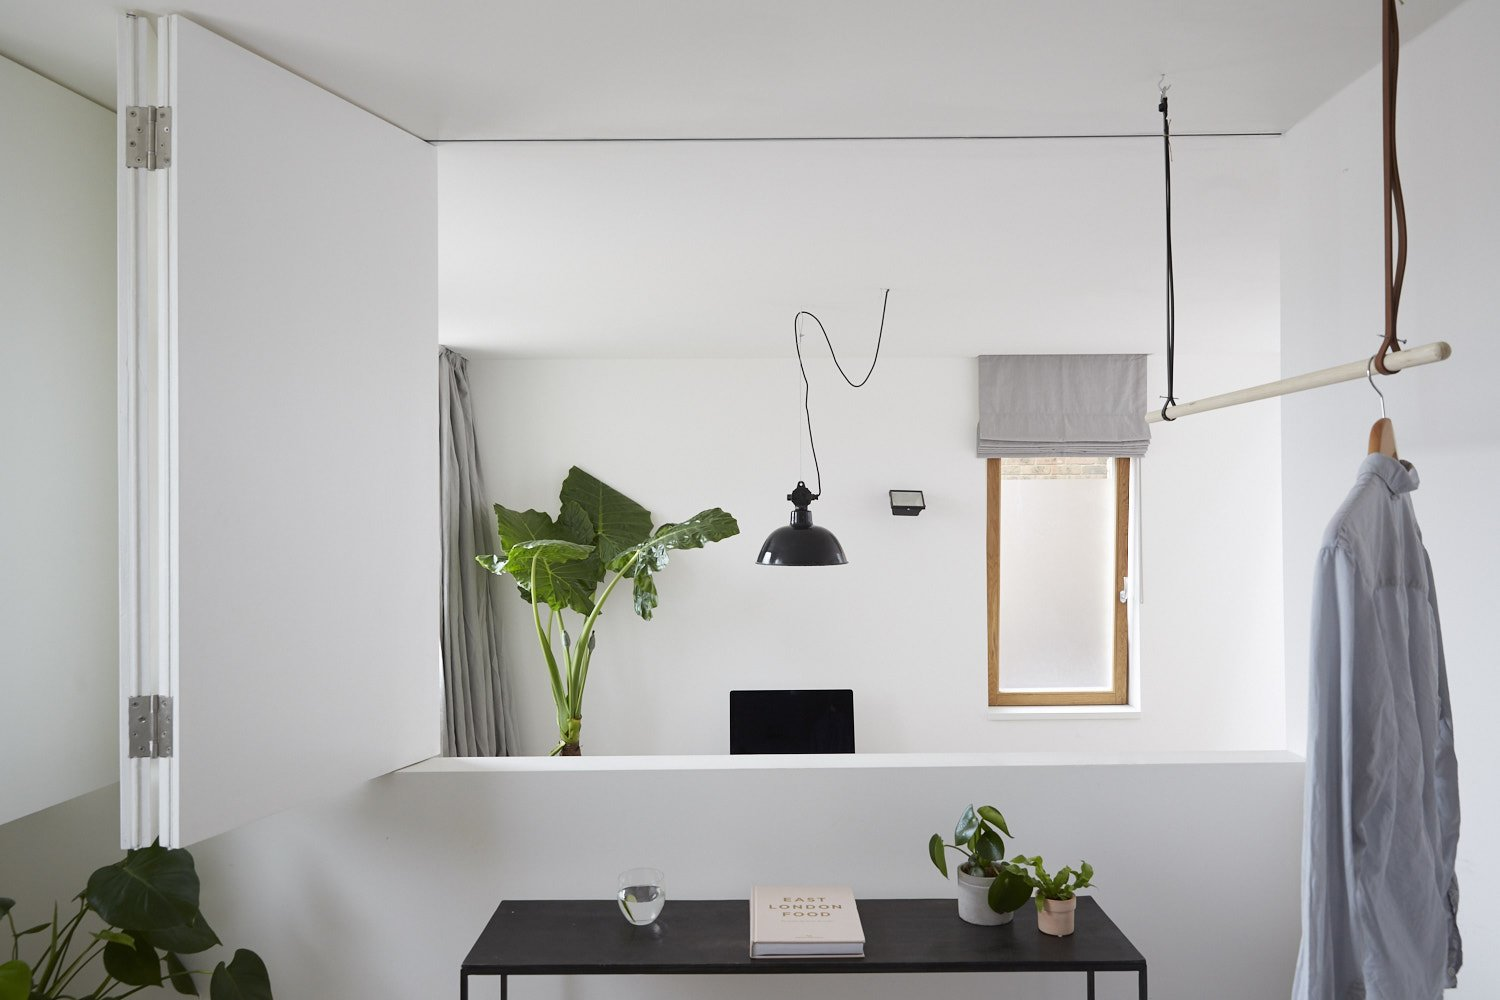 Office, Study Room Type, and Desk The flexible home-office space overlooks the living room below  Hackney Mews House by HUTCH design